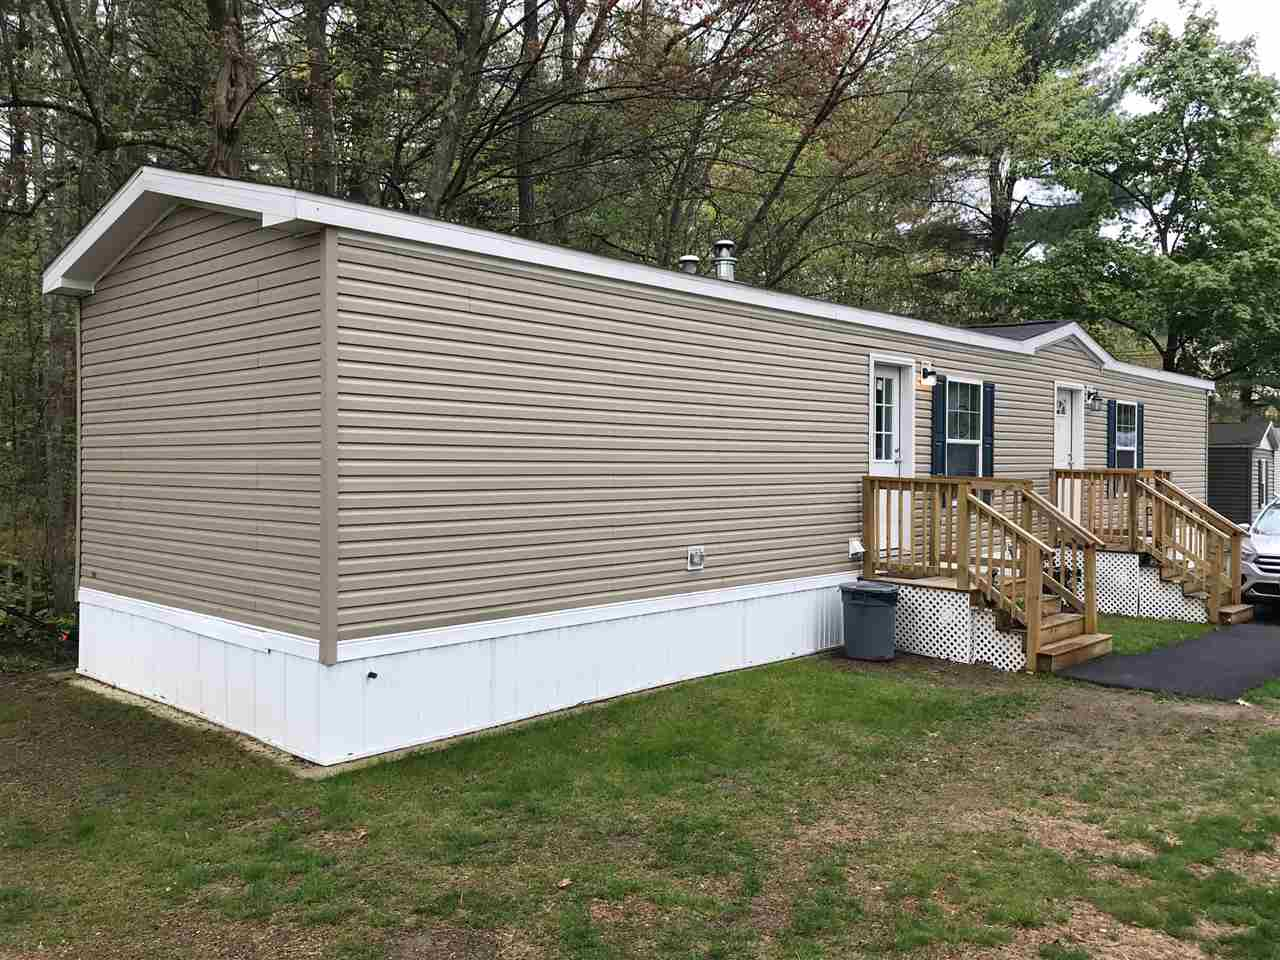 MLS 4753677: 39 Spruce Terrace, Derry NH